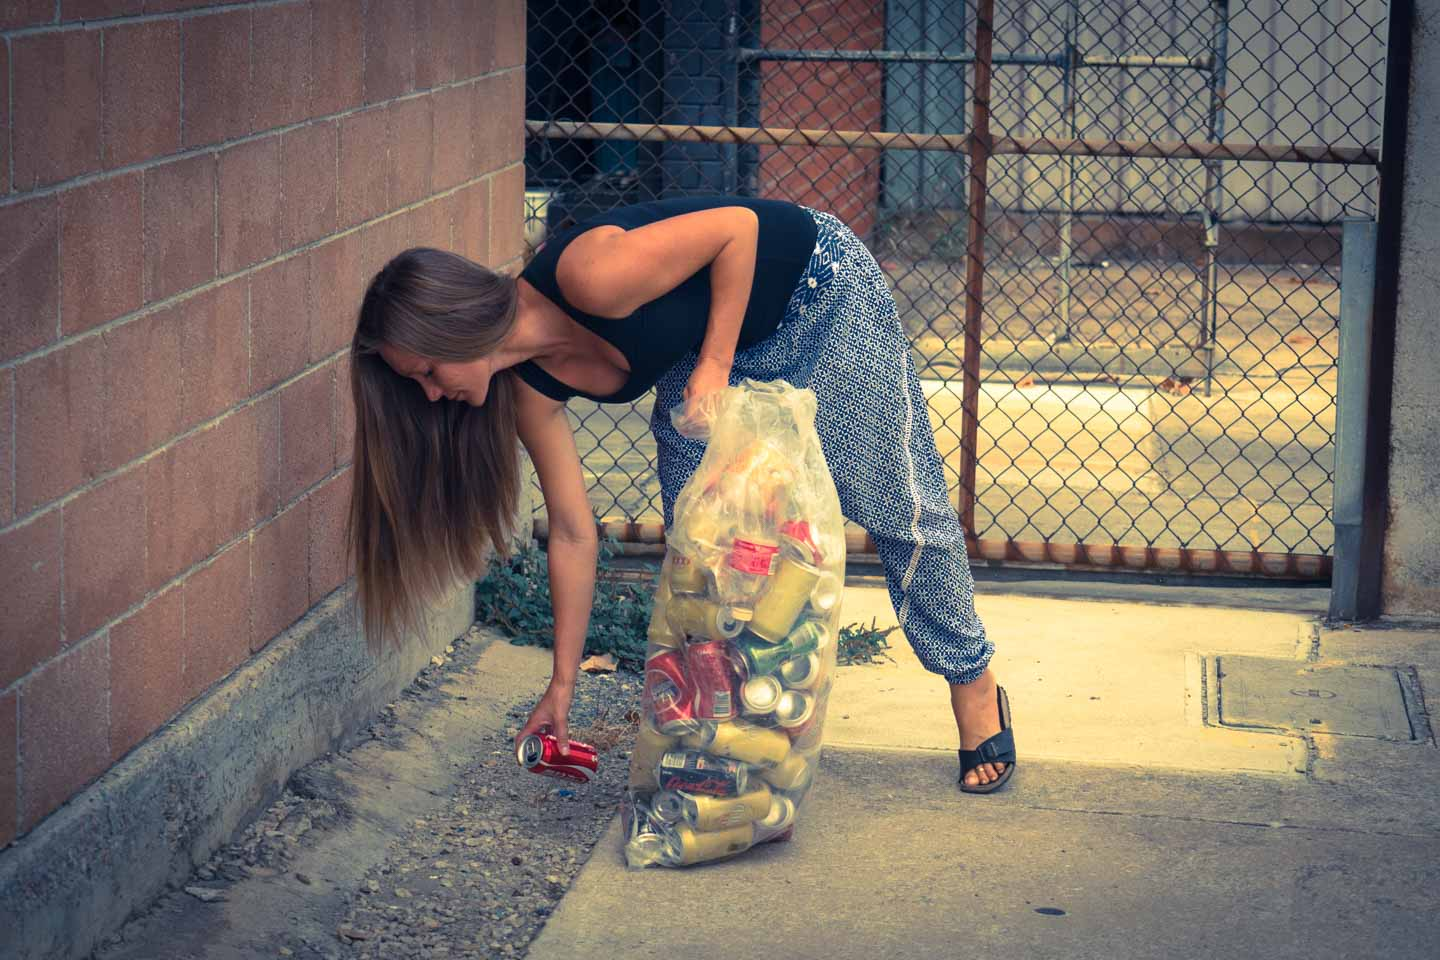 Anita Kisiala collecting Recycling cans in South Australia